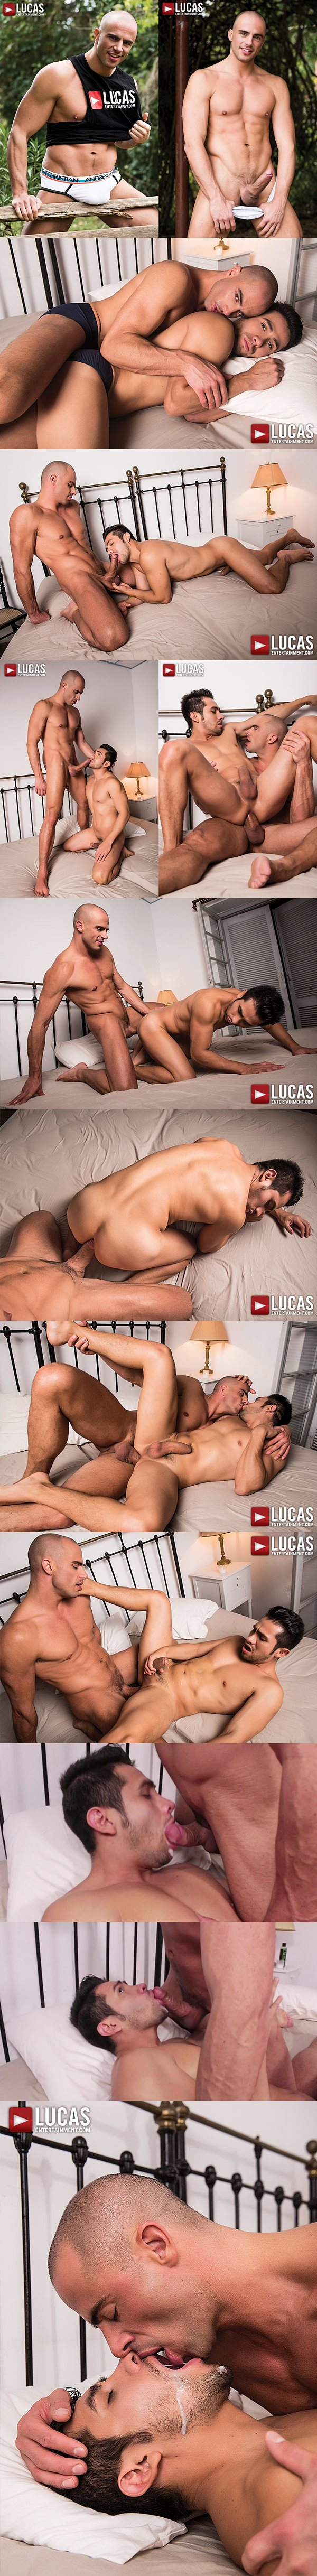 Handsome muscle hunk Diego Summers barebacks Derek Allan at Lucasentertainment 02